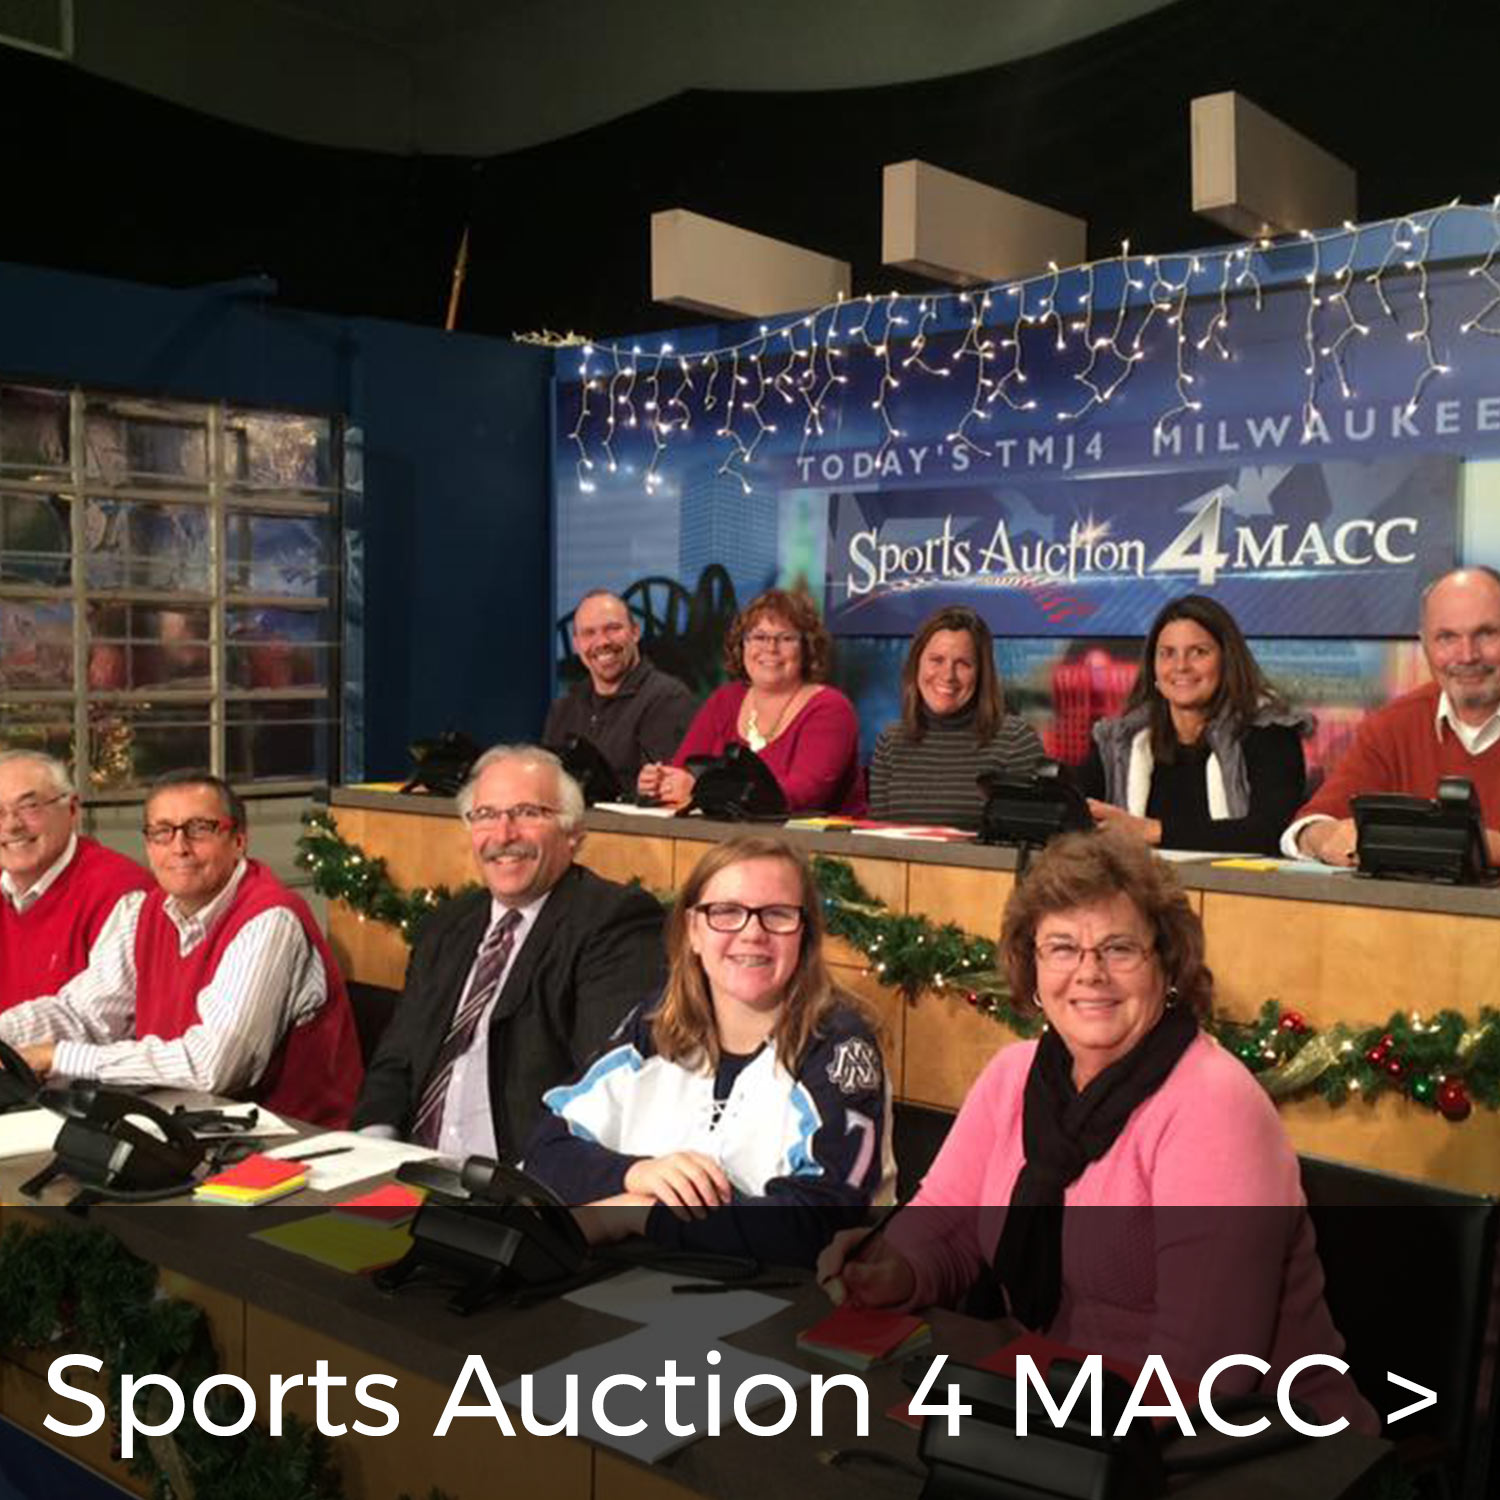 Sports Auction 4 MACC